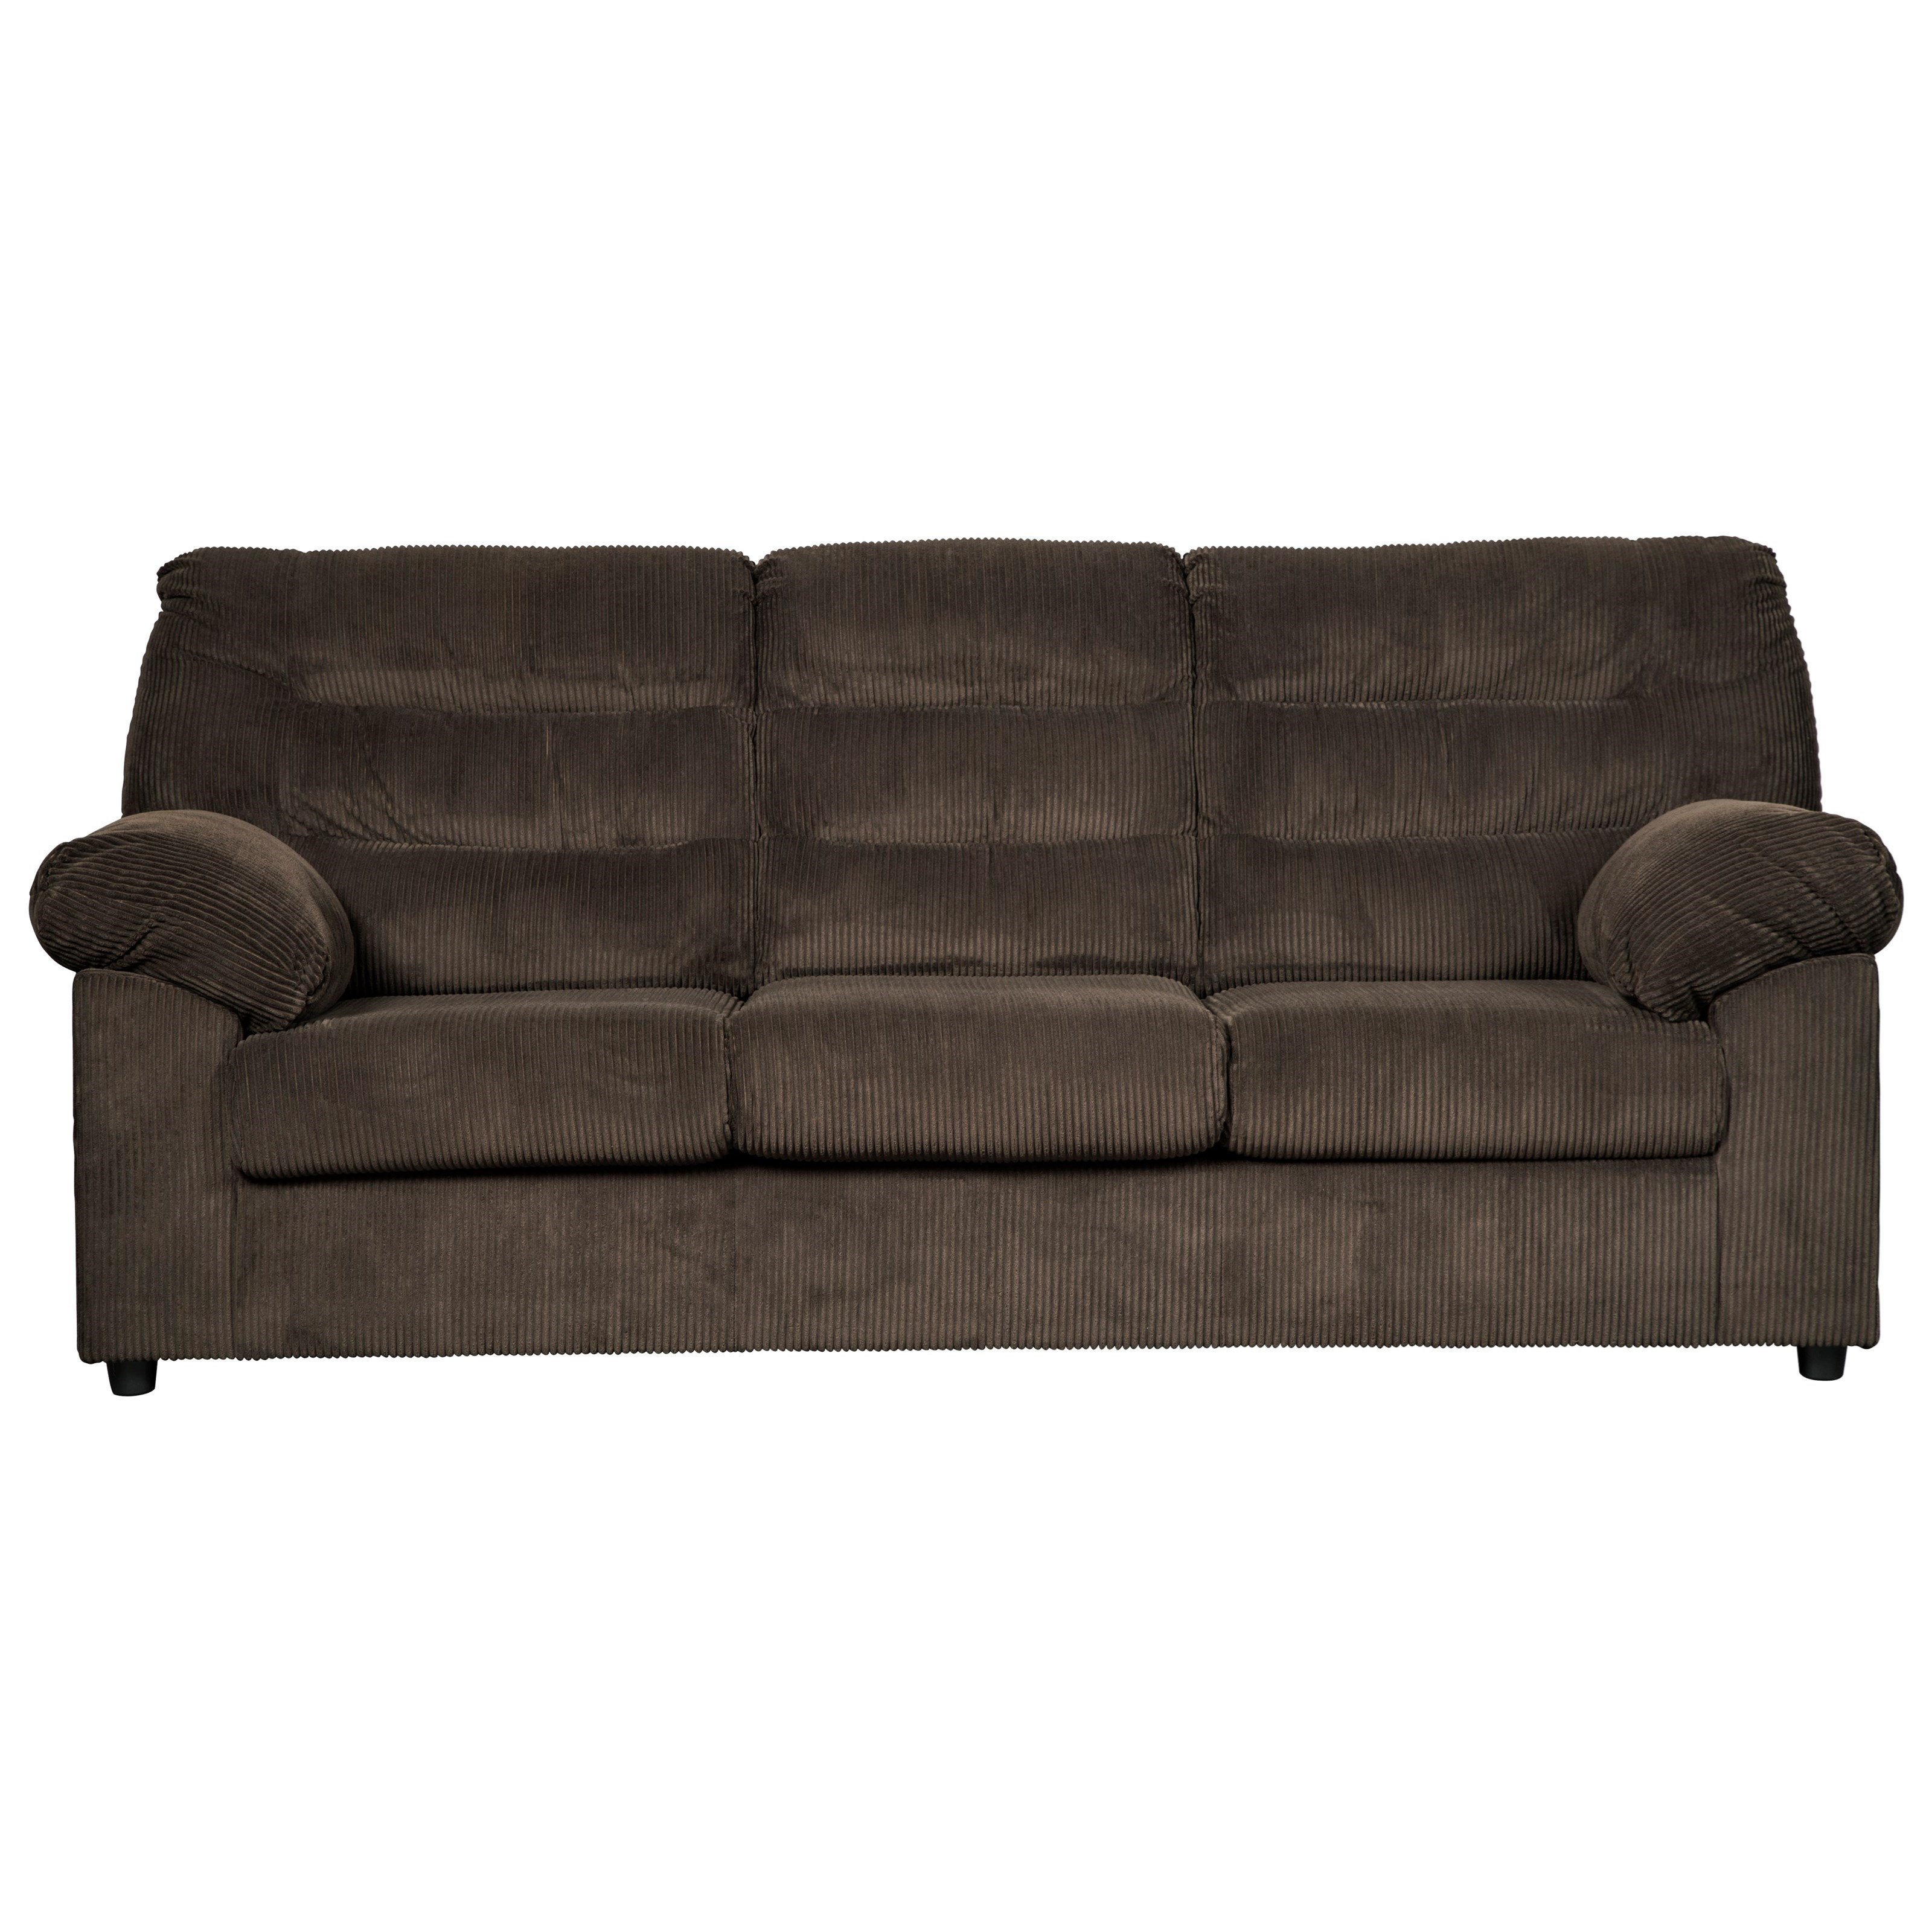 Signature Design by Ashley Gosnell Sofa - Item Number: 9610138